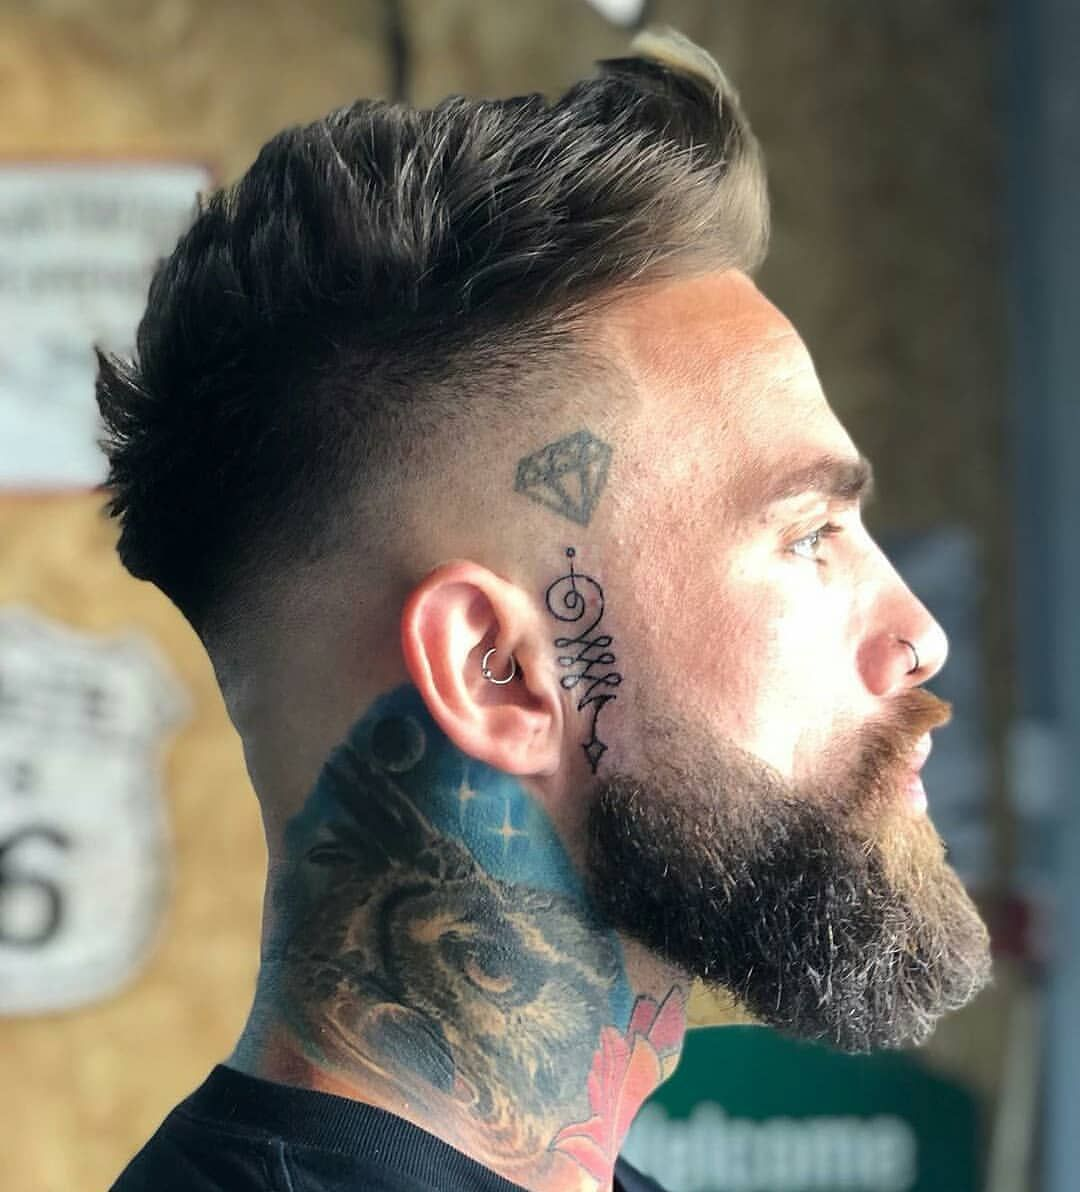 New style haircuts for men your thoughts on his hair and beard game comment below credi